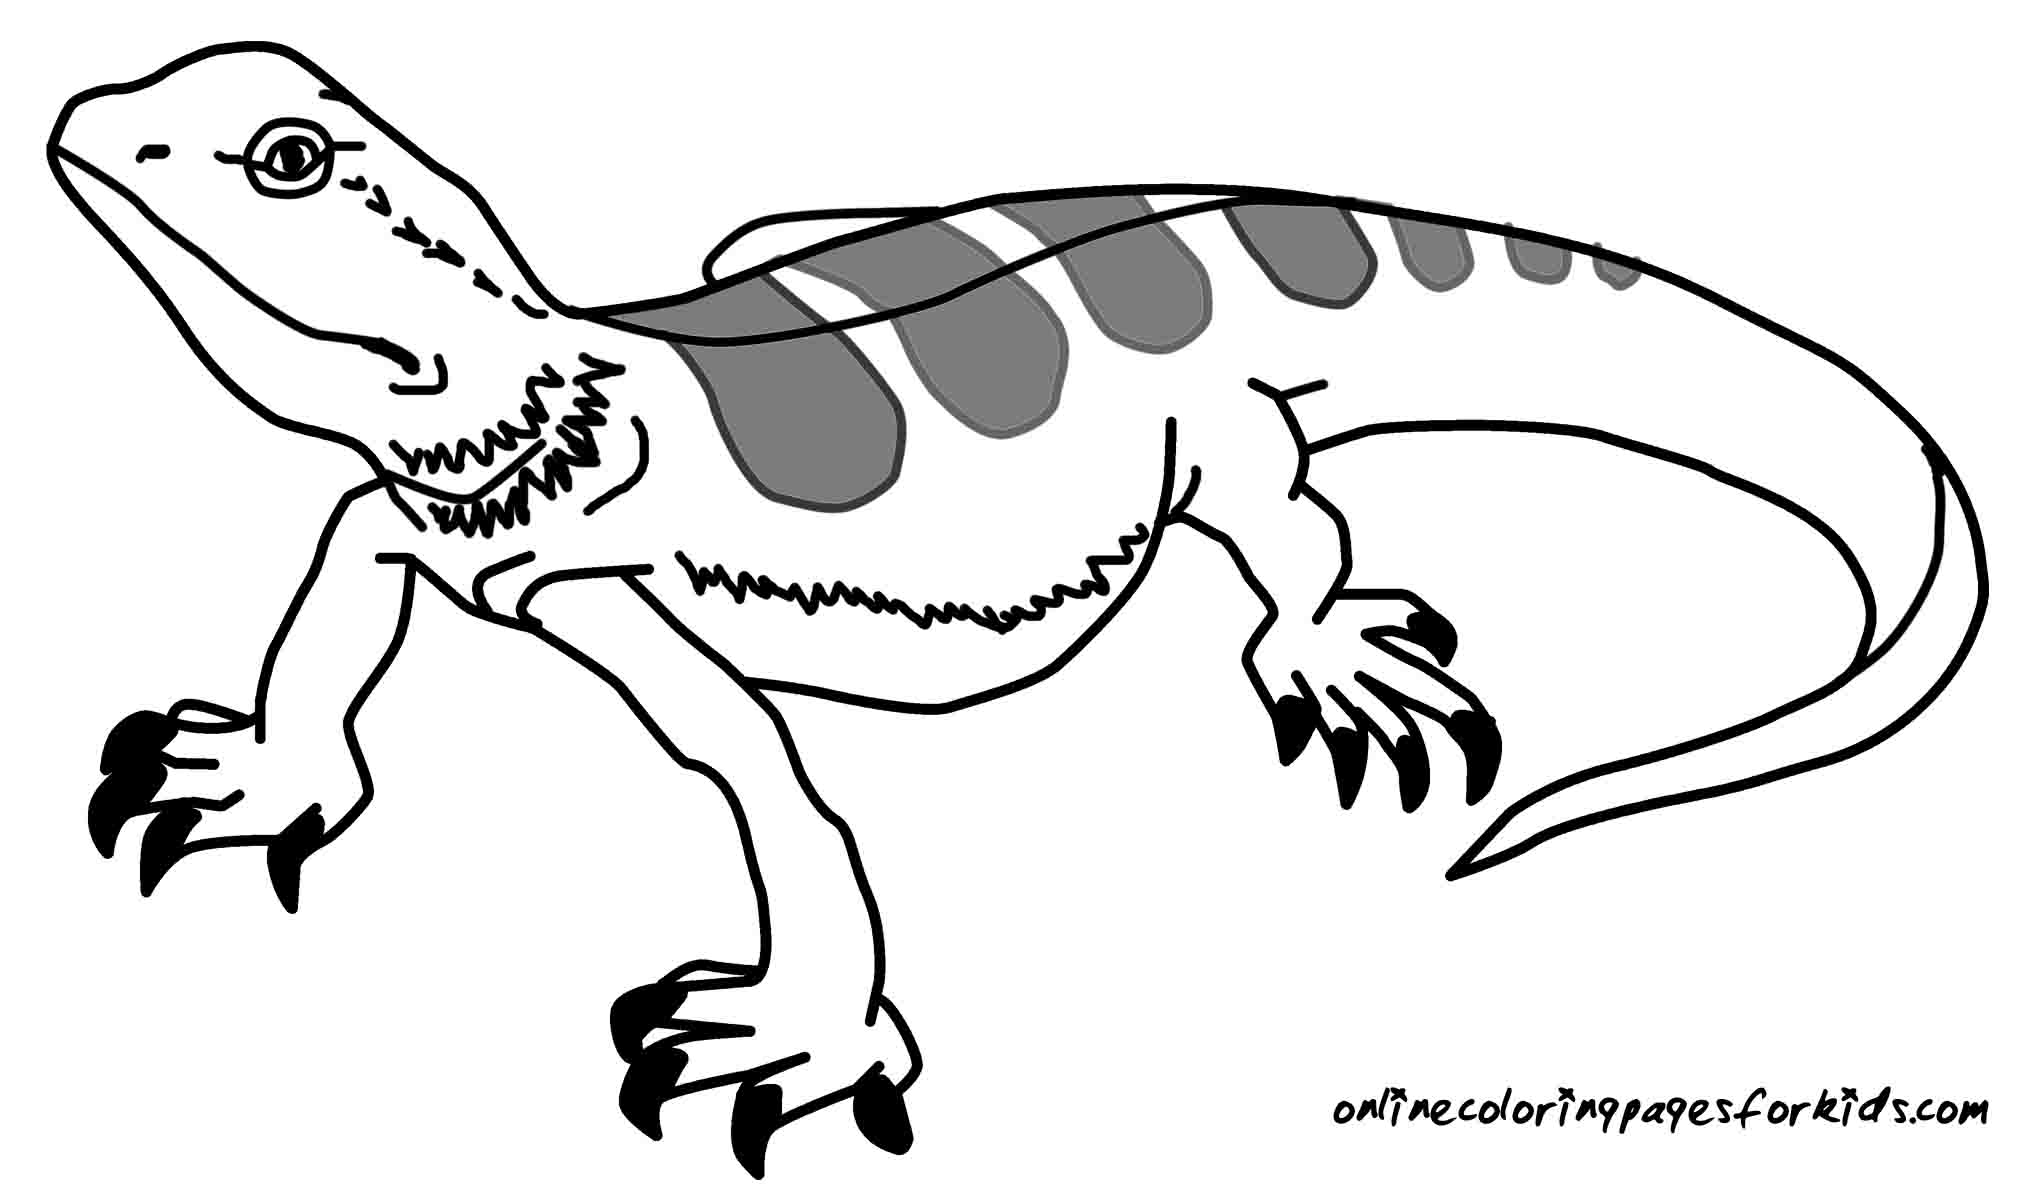 Reptile coloring pages to download